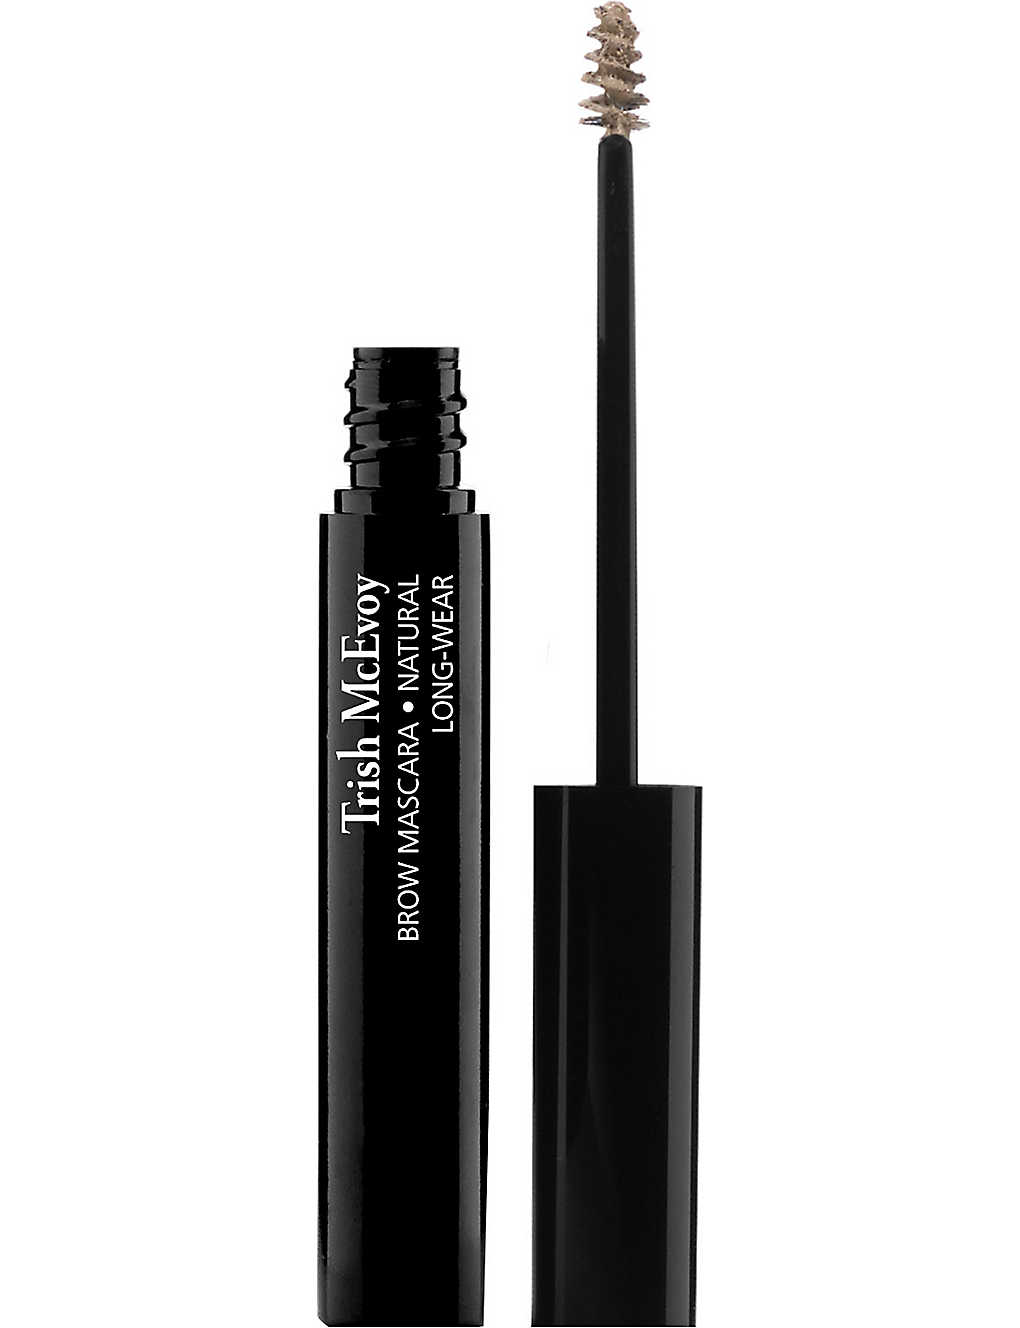 TRISH MCEVOY: Brow mascara long-wear